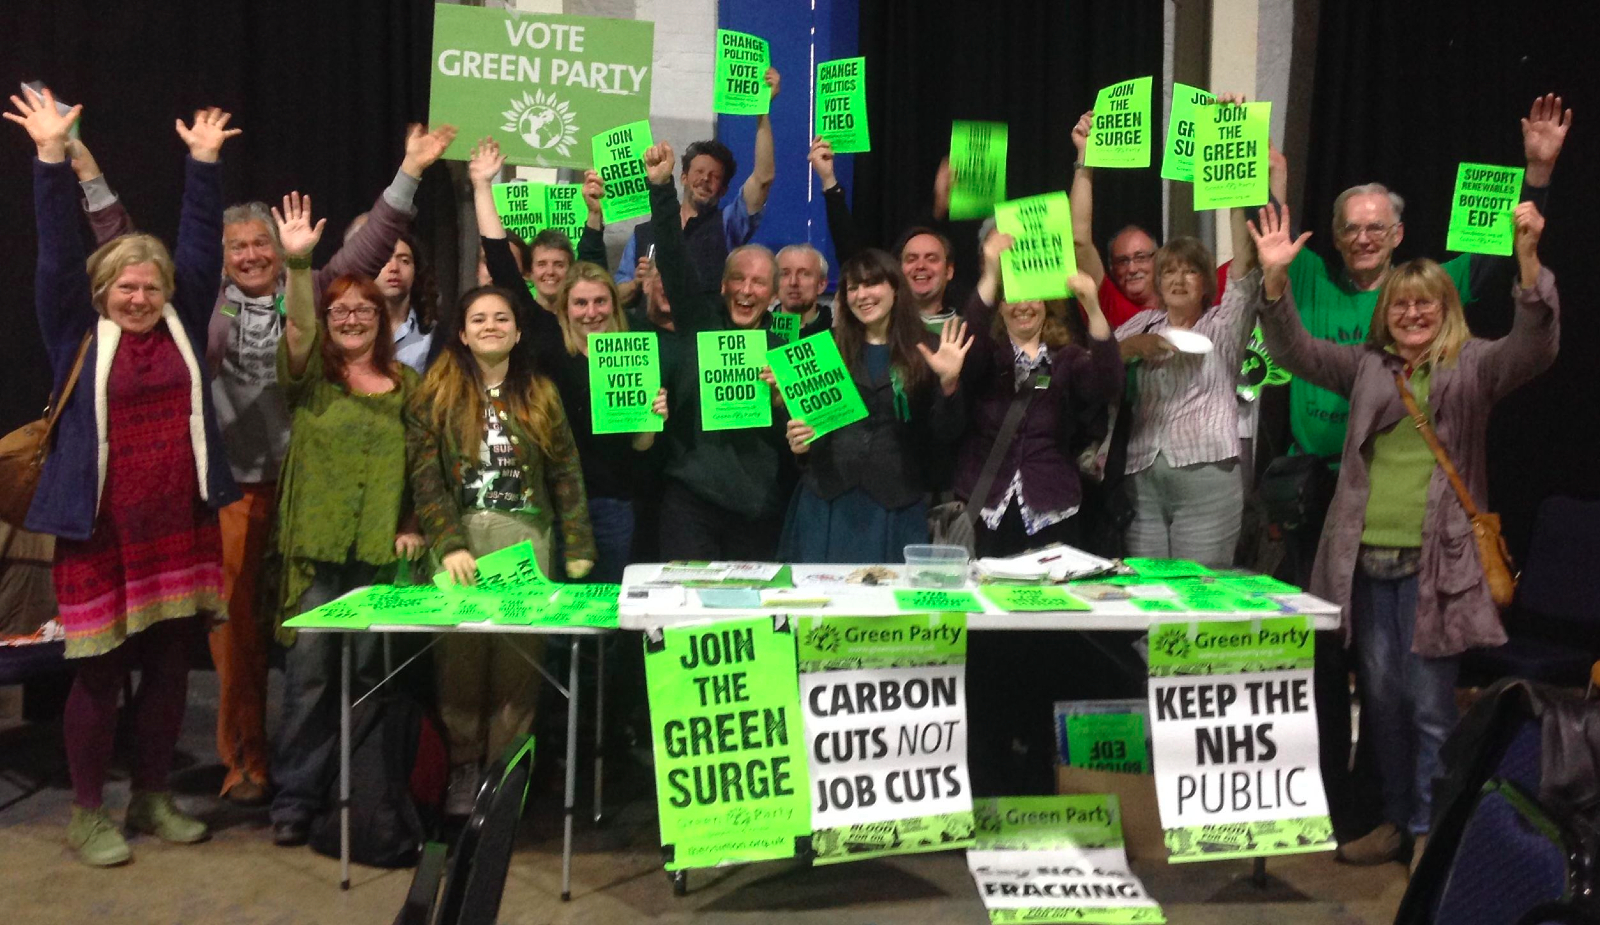 East Mendip Green Party members, with Amelia Womack and others, celebrating the Green Surge